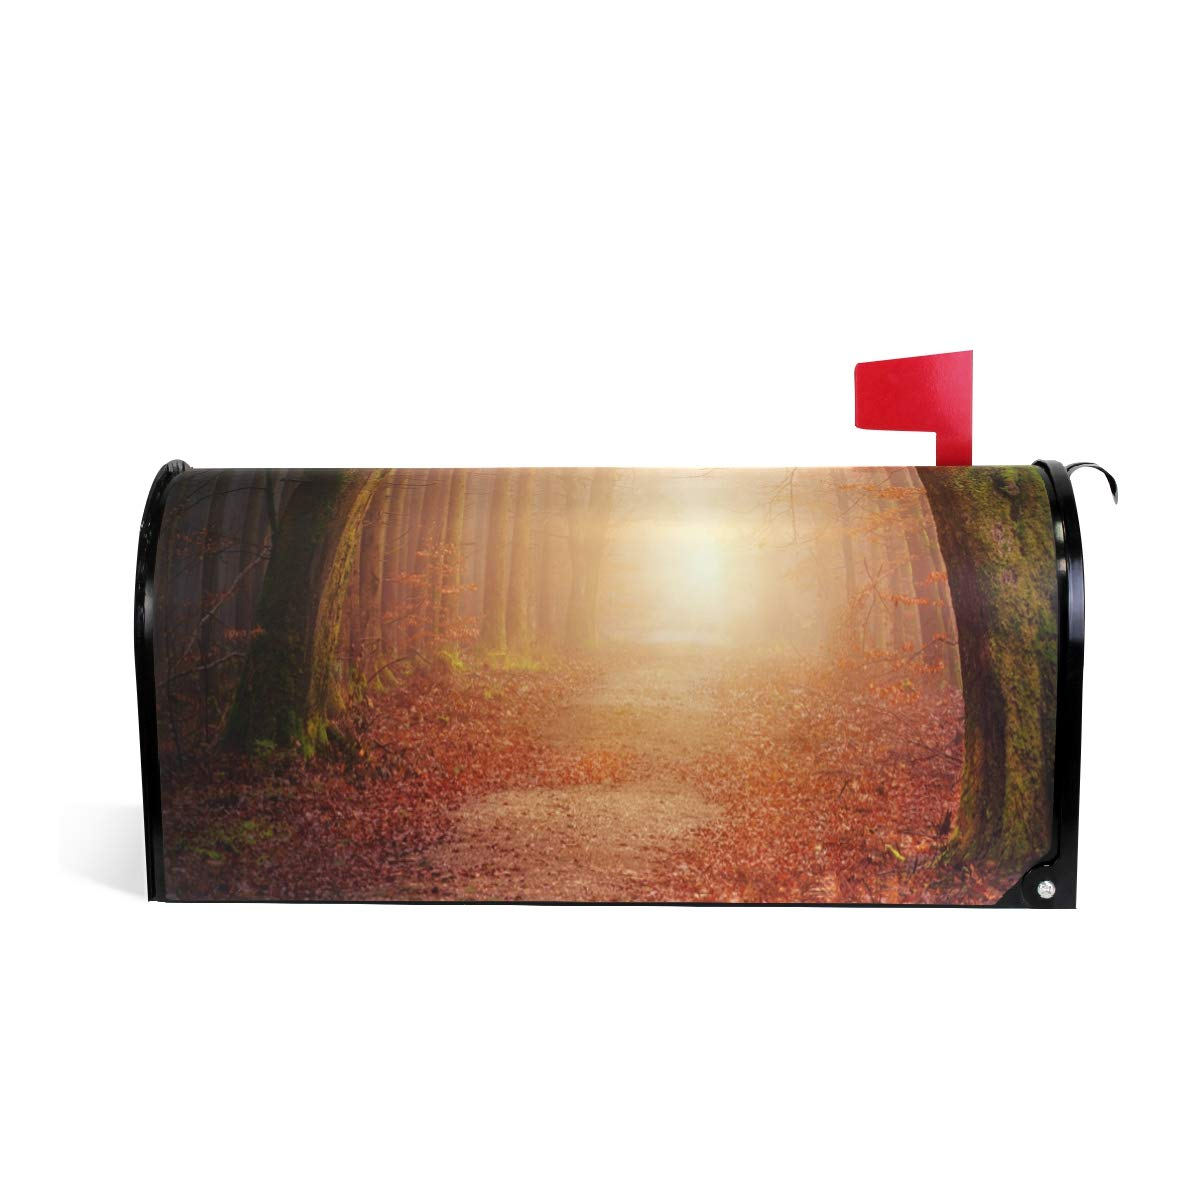 HEOEH Nature Forest Trees Sun Light Magnetic Mailbox Cover Home Garden Decorations Oversized 25.5 x 20.8 inches